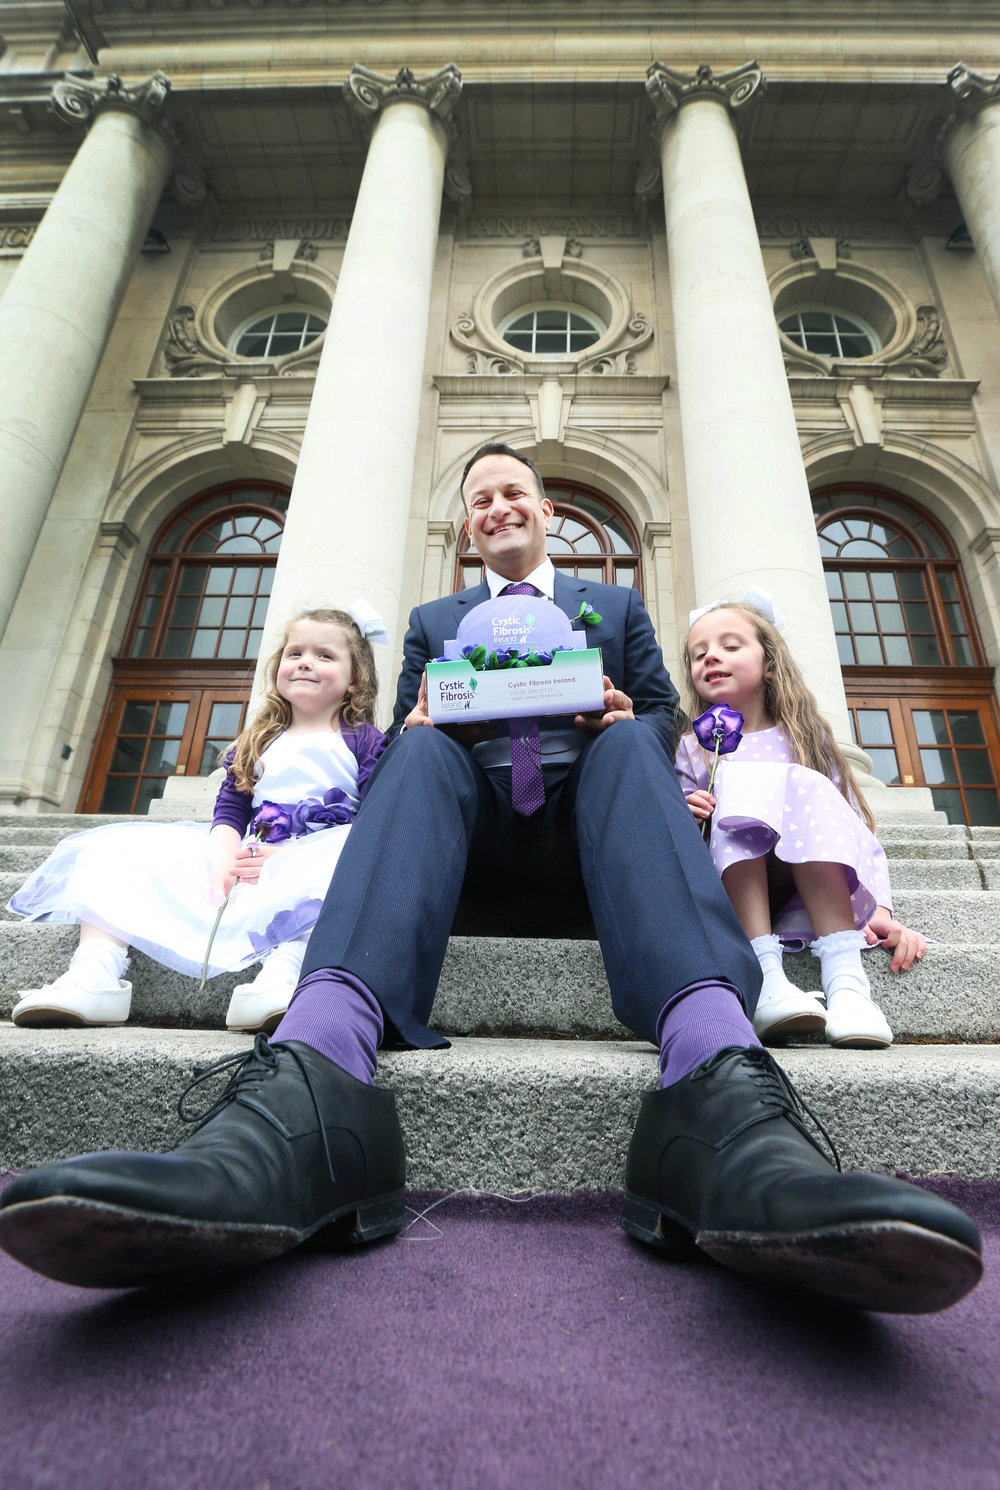 Taoiseach Leo Varadkar doing Cystic Fibrosis launch